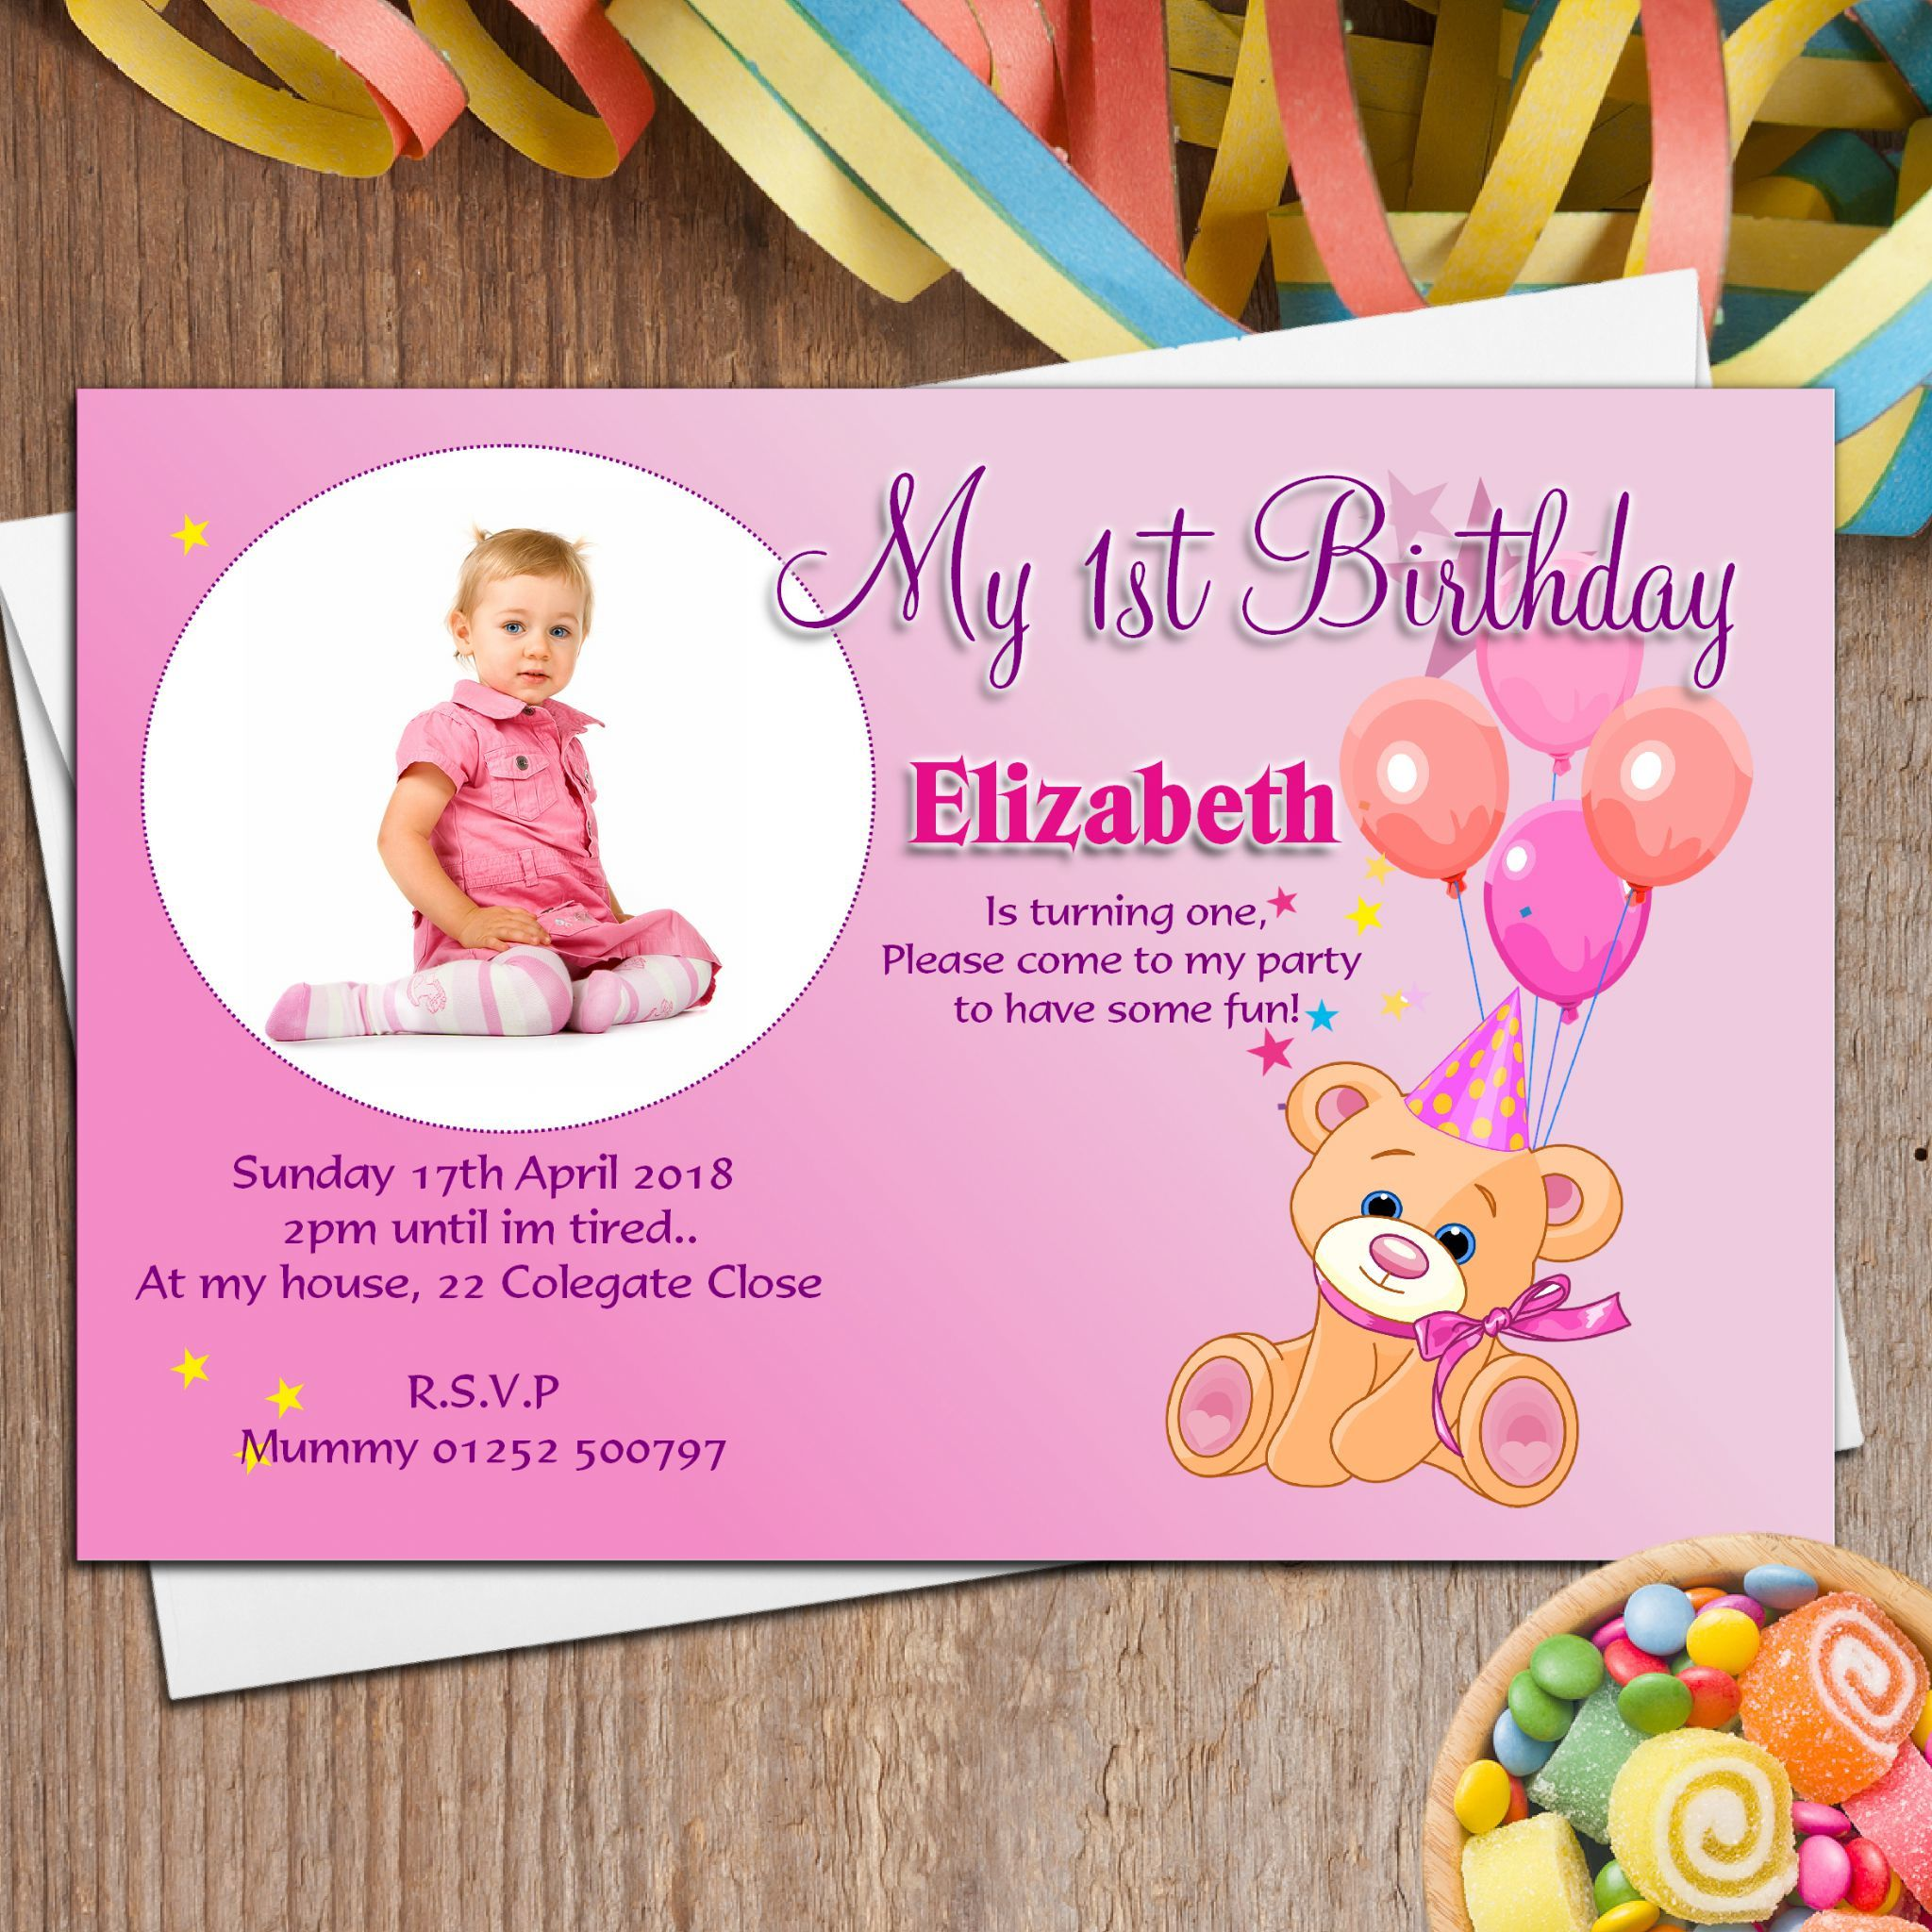 Custom Birthday Invitations Near Me